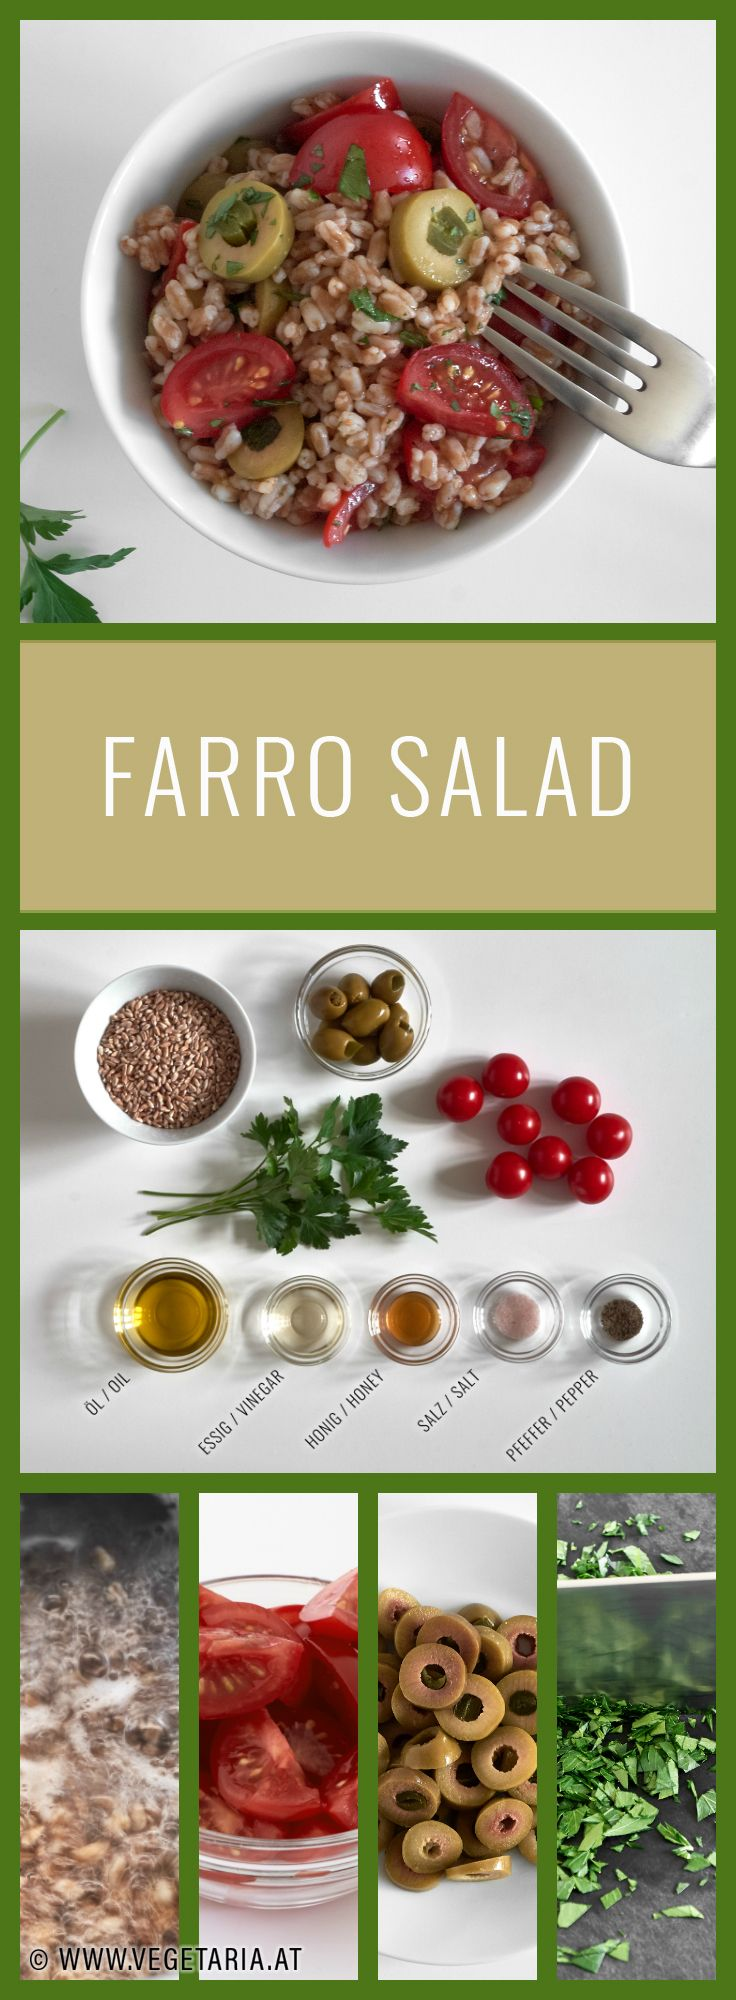 Farro salad with olives and tomatoes. Very easy to make, give it a try!